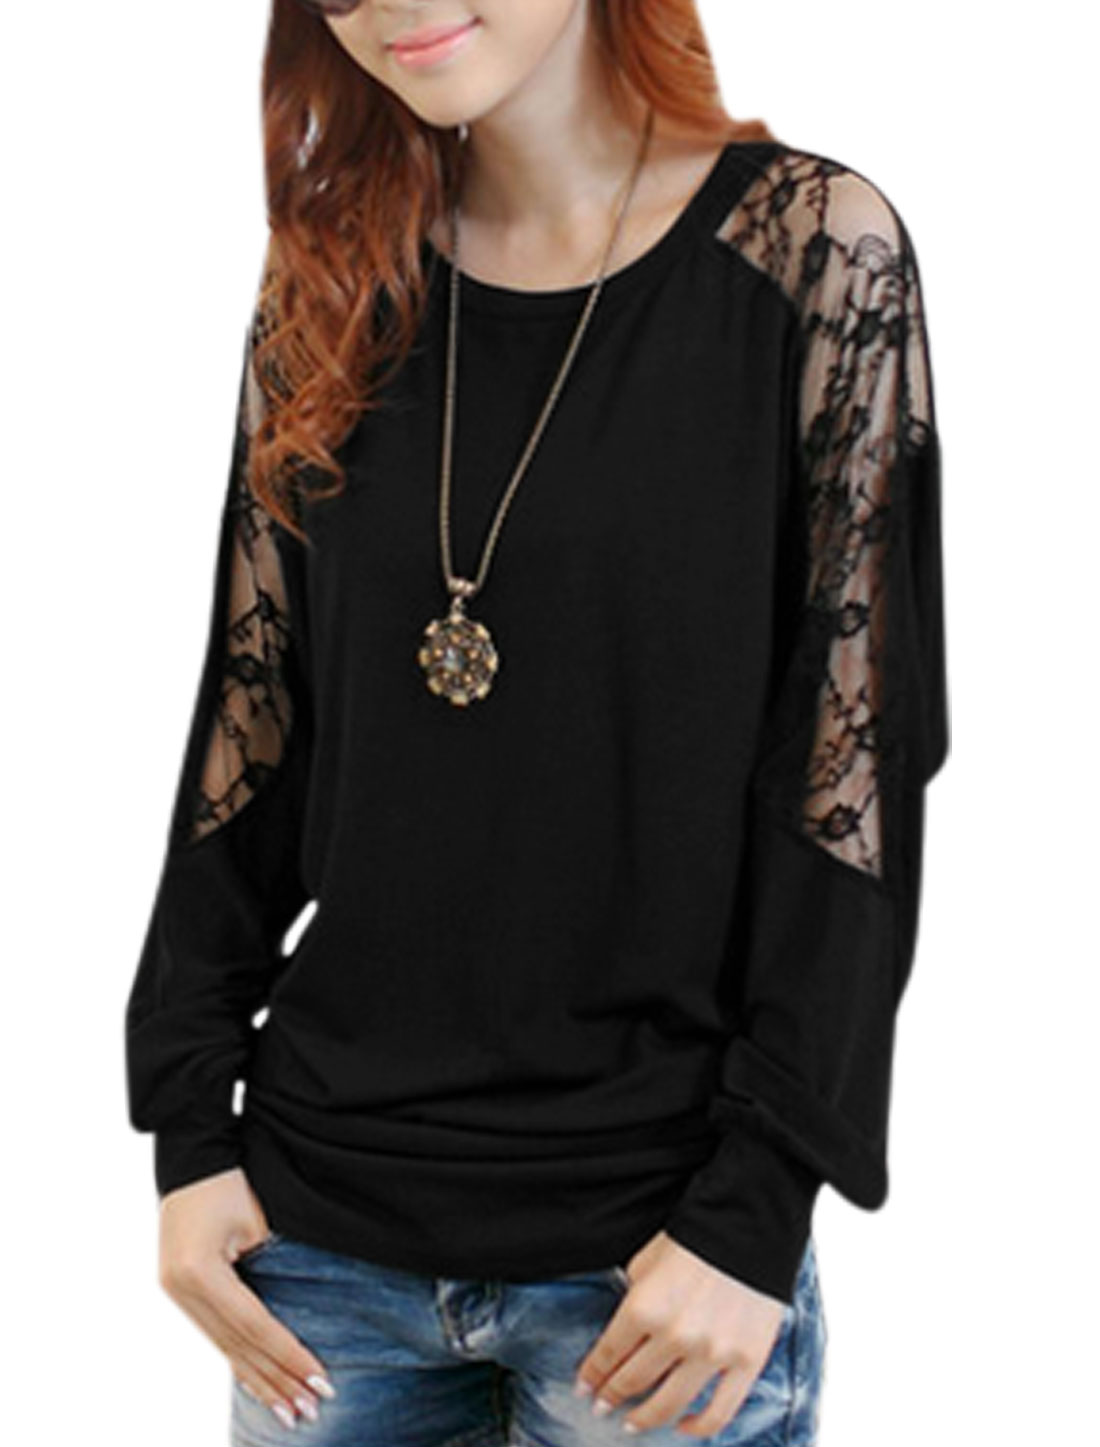 Women Lace Panel Design Long Batwing Sleeves Shirt Black XS